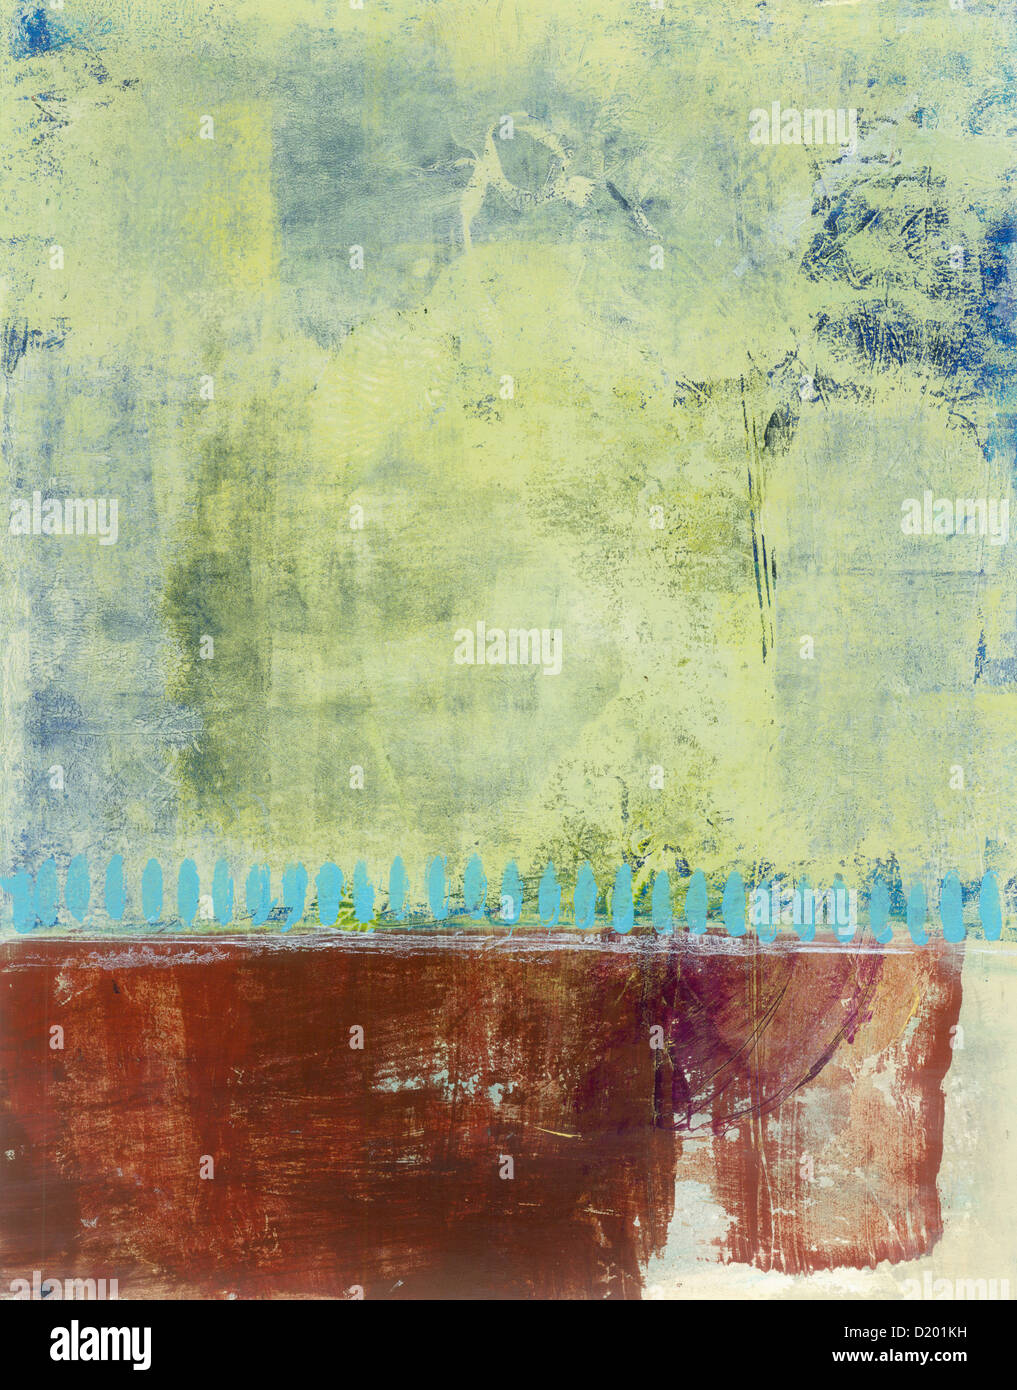 Abstract painting with space for design and copy. - Stock Image